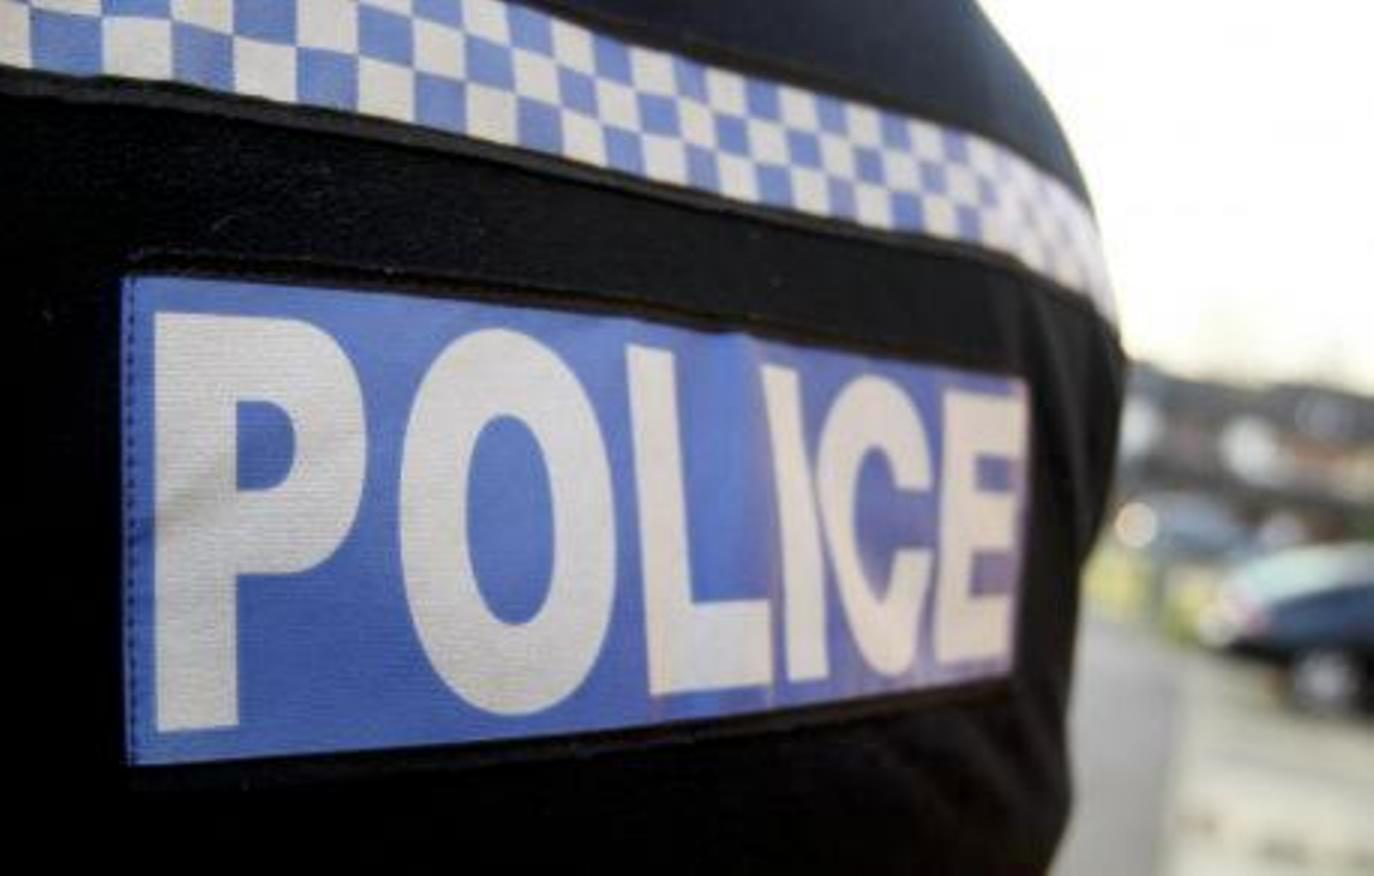 Burglars target homes across Tendring